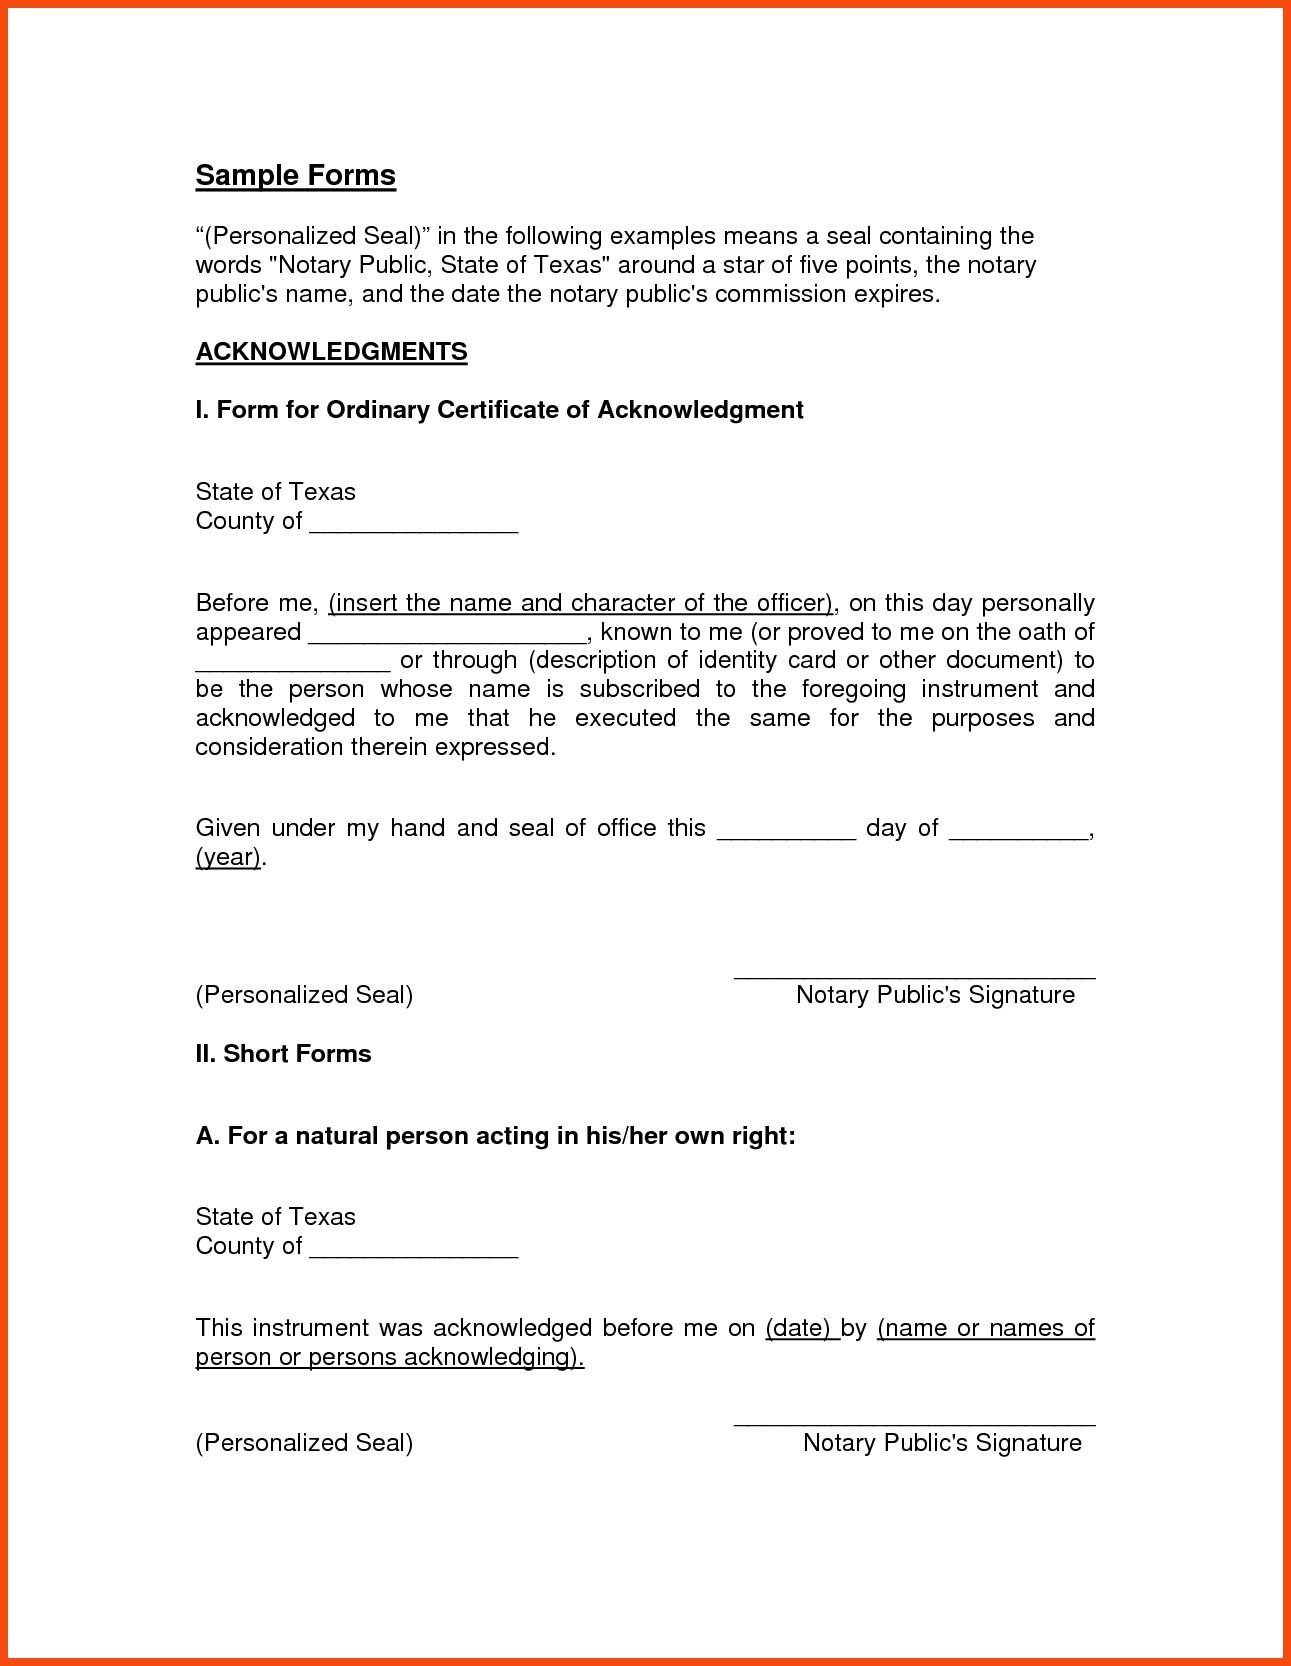 Notarized Letter Template Florida - Inspiration Example Notarized Letter Best Inspiration Best S